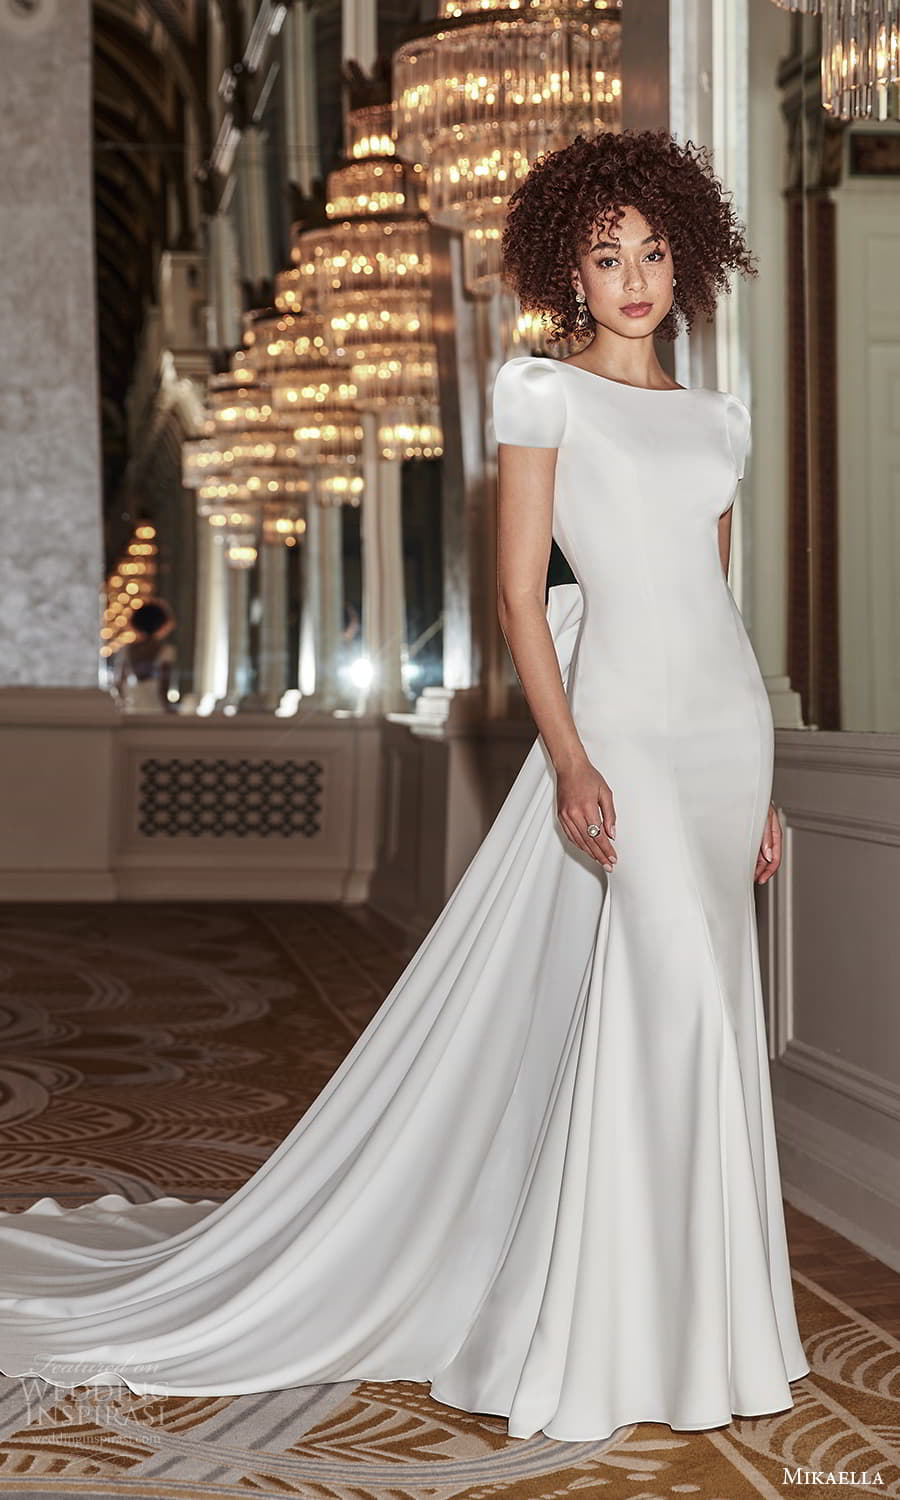 mikaella fall 2021 bridal short puff sleeves bateau neckline clean minimalist sheath wedding dress chapel train (3) mv